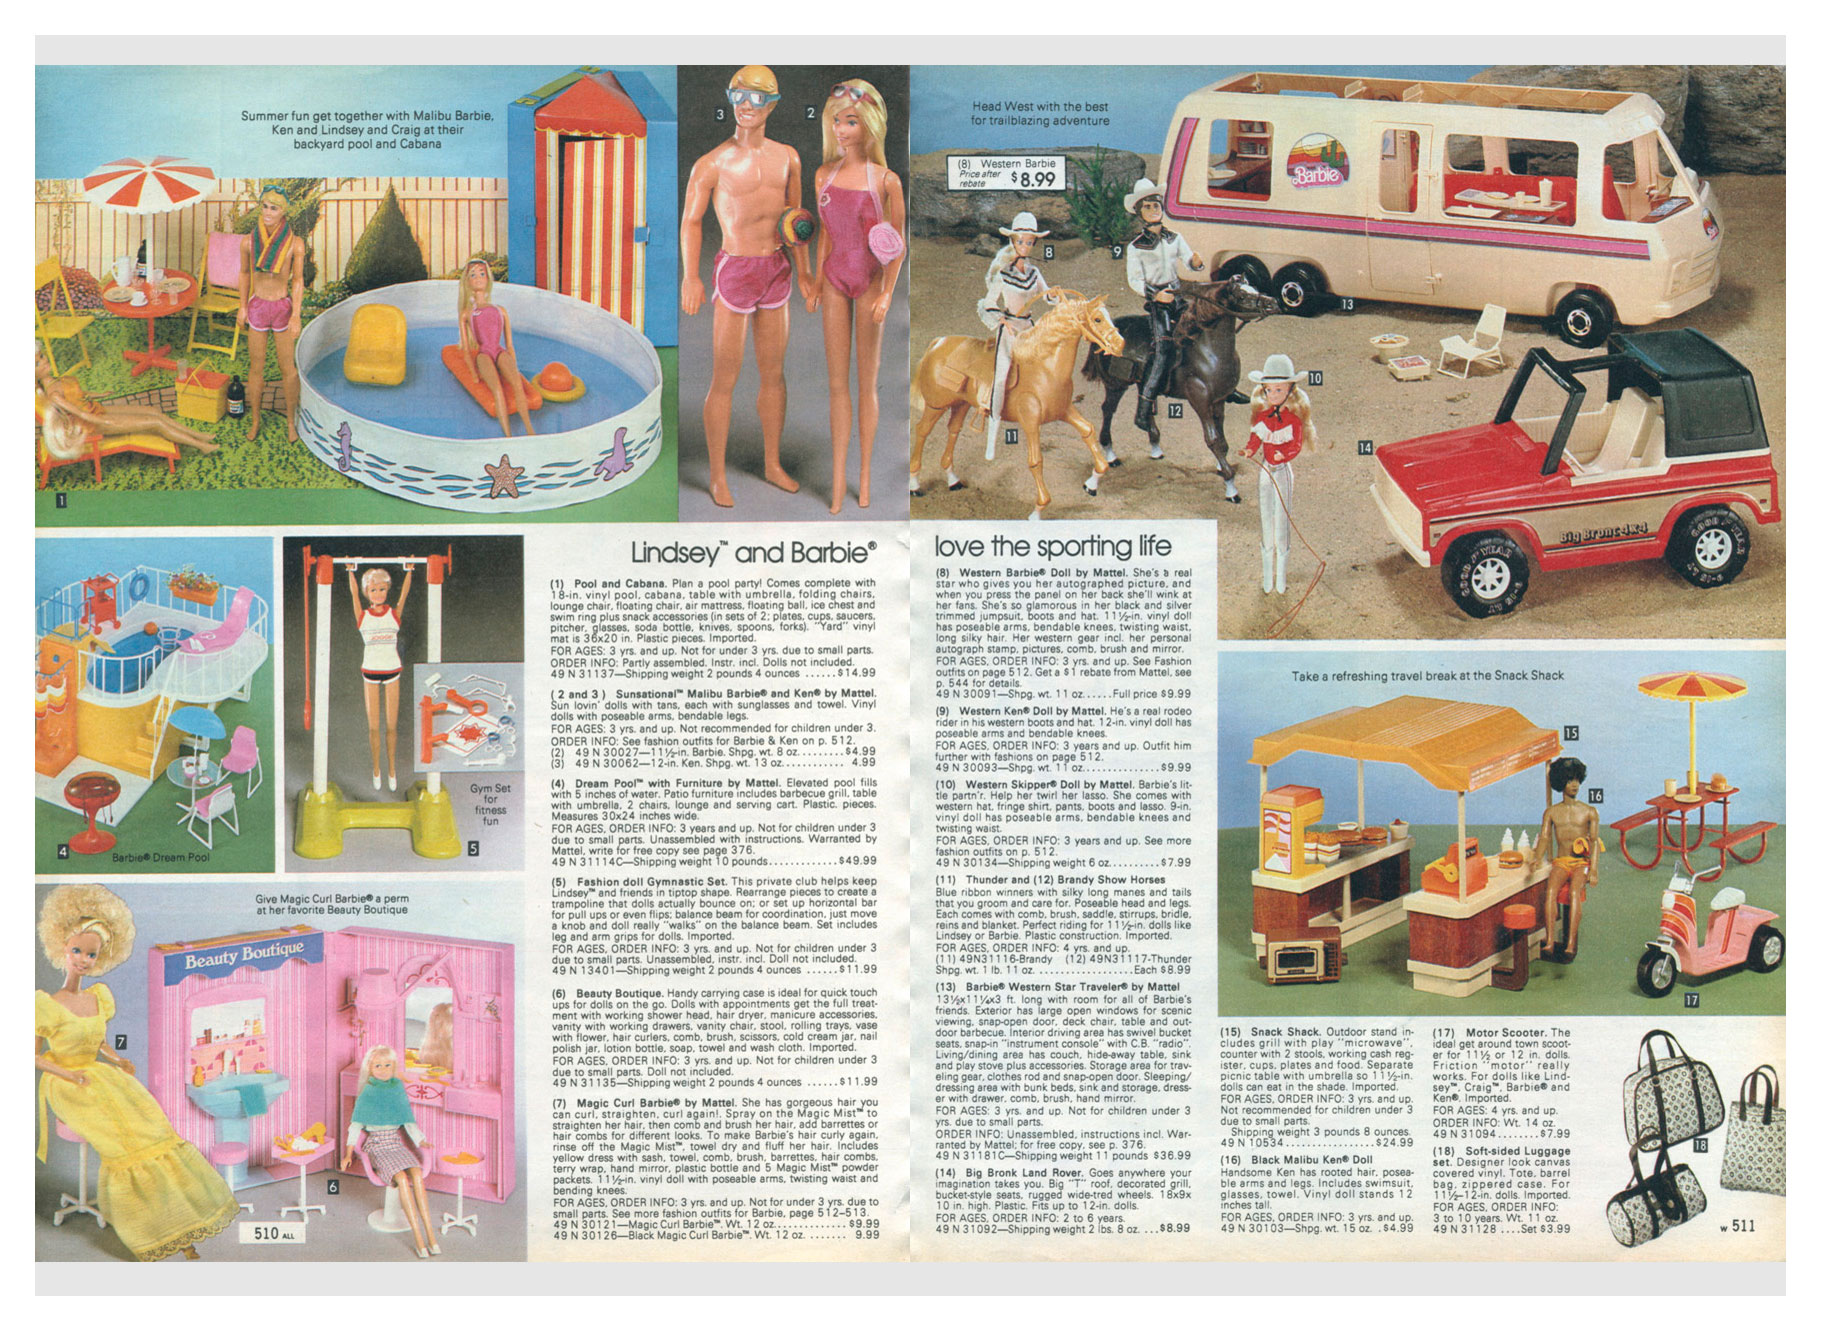 From 1982 Sears Wish Book